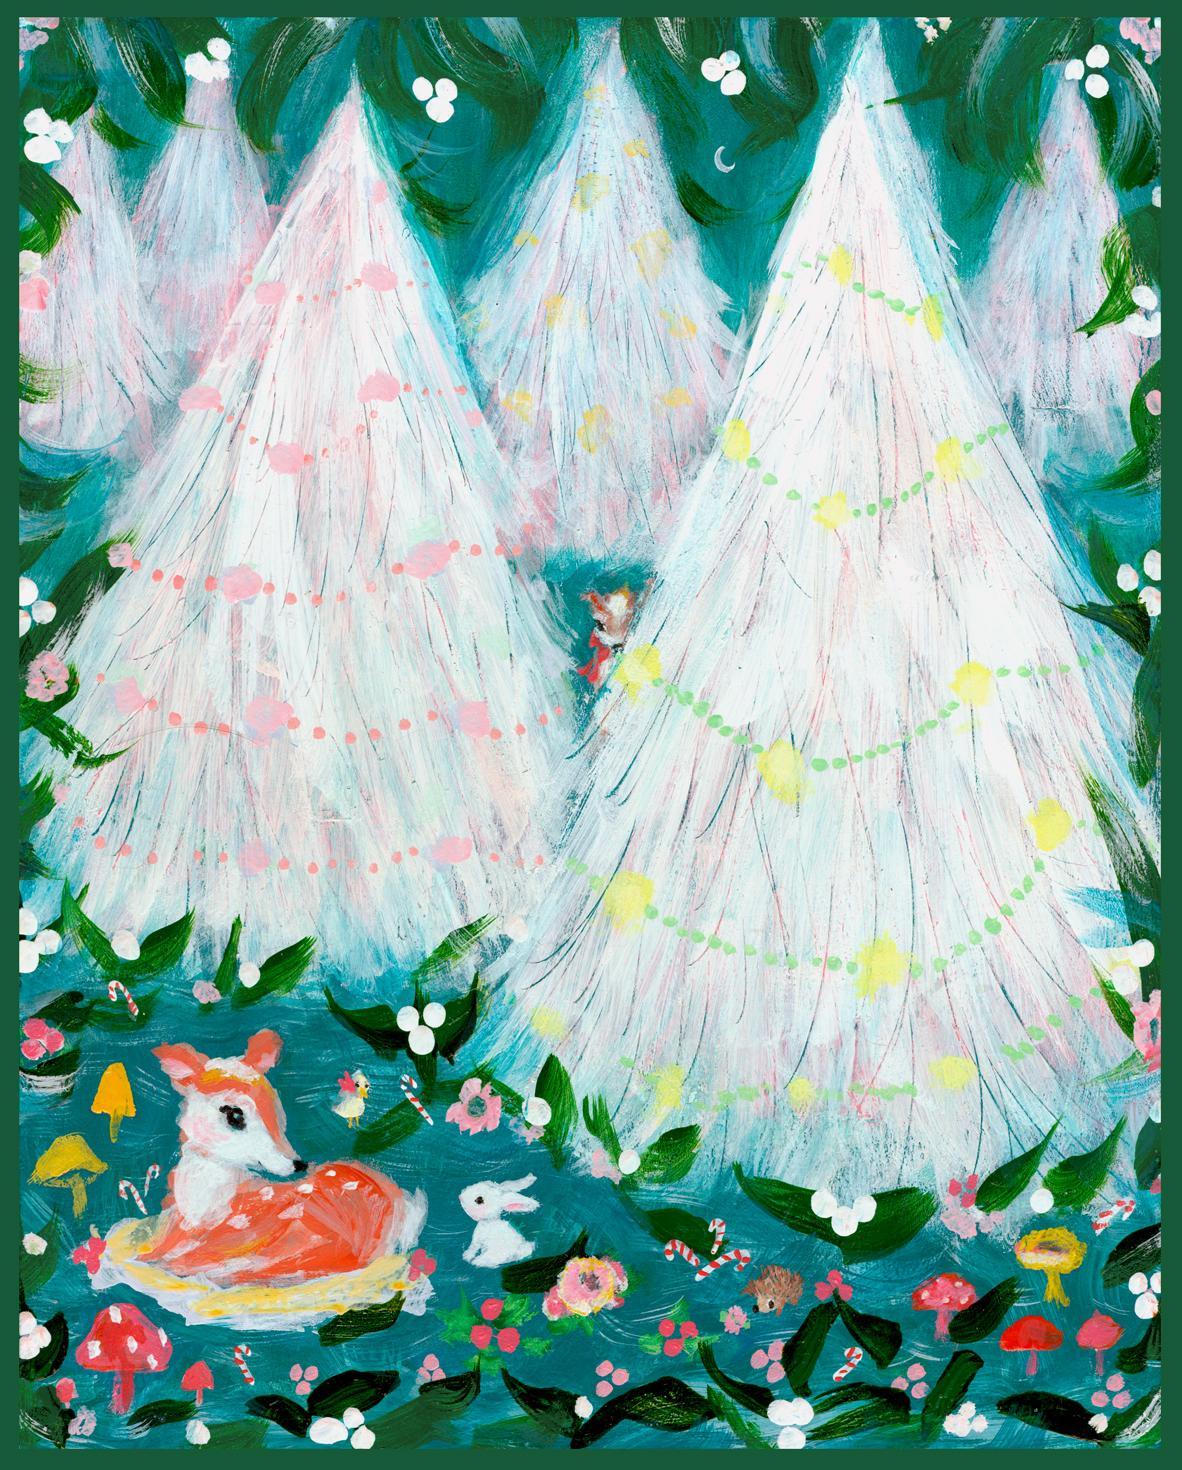 Allyn_Howard_Fawn_card_pink-trees_bunny.jpg